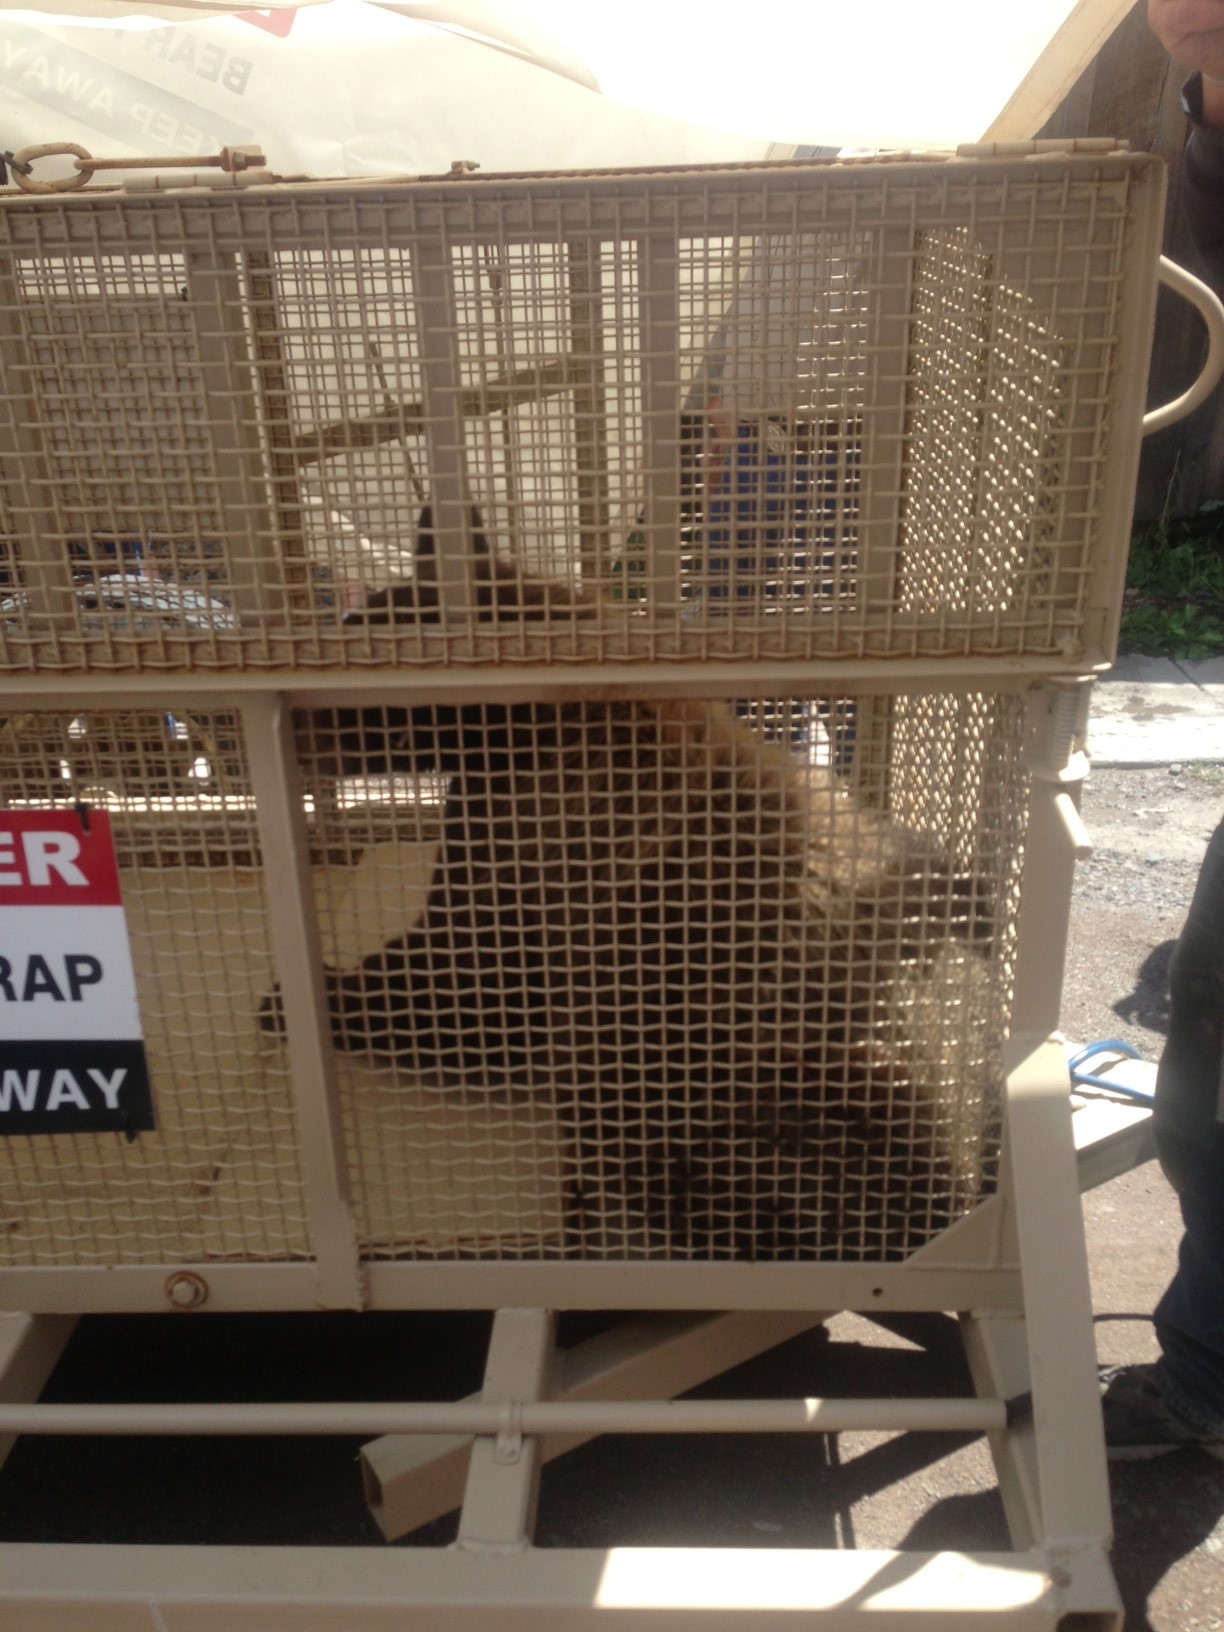 Moving problem bear from Creede Colorado to the forest.